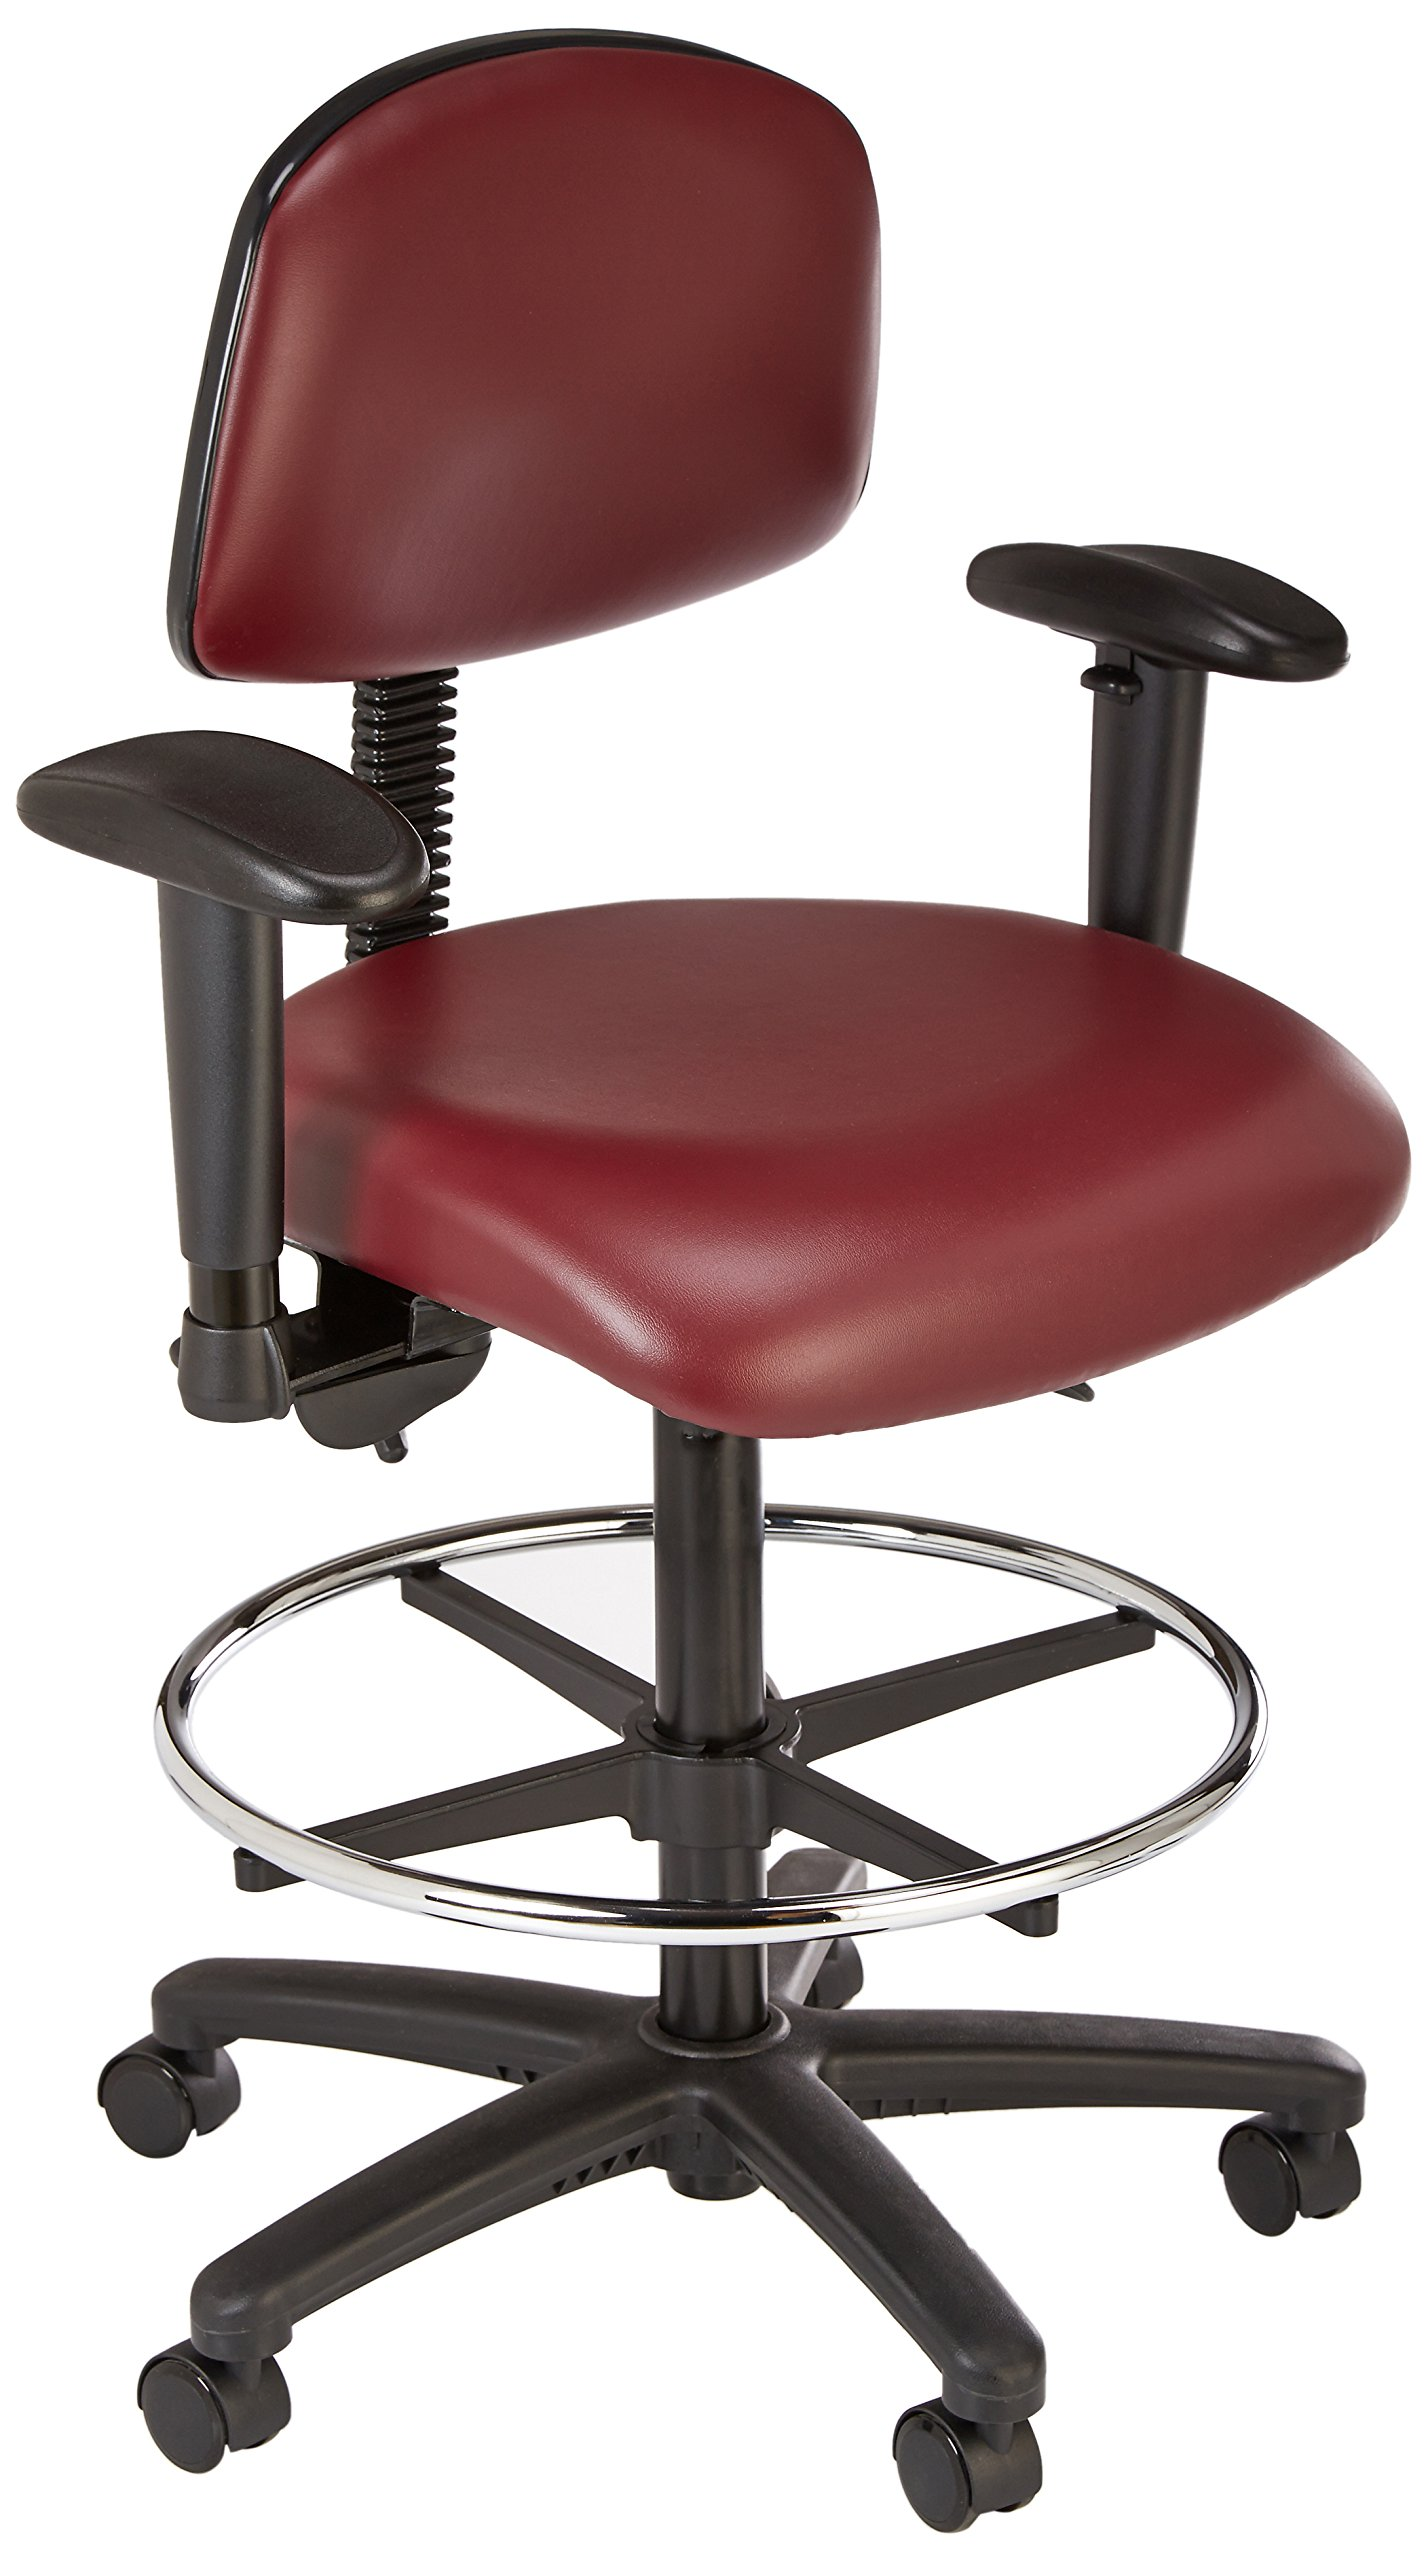 Thomas Vinyl High Bench Height Chair with Black Nylon Base, With Chrome Foot Ring and Tilt Seat and 6 way adjustable arms, 25'' to 35'' Adjustable Heights, Burgundy